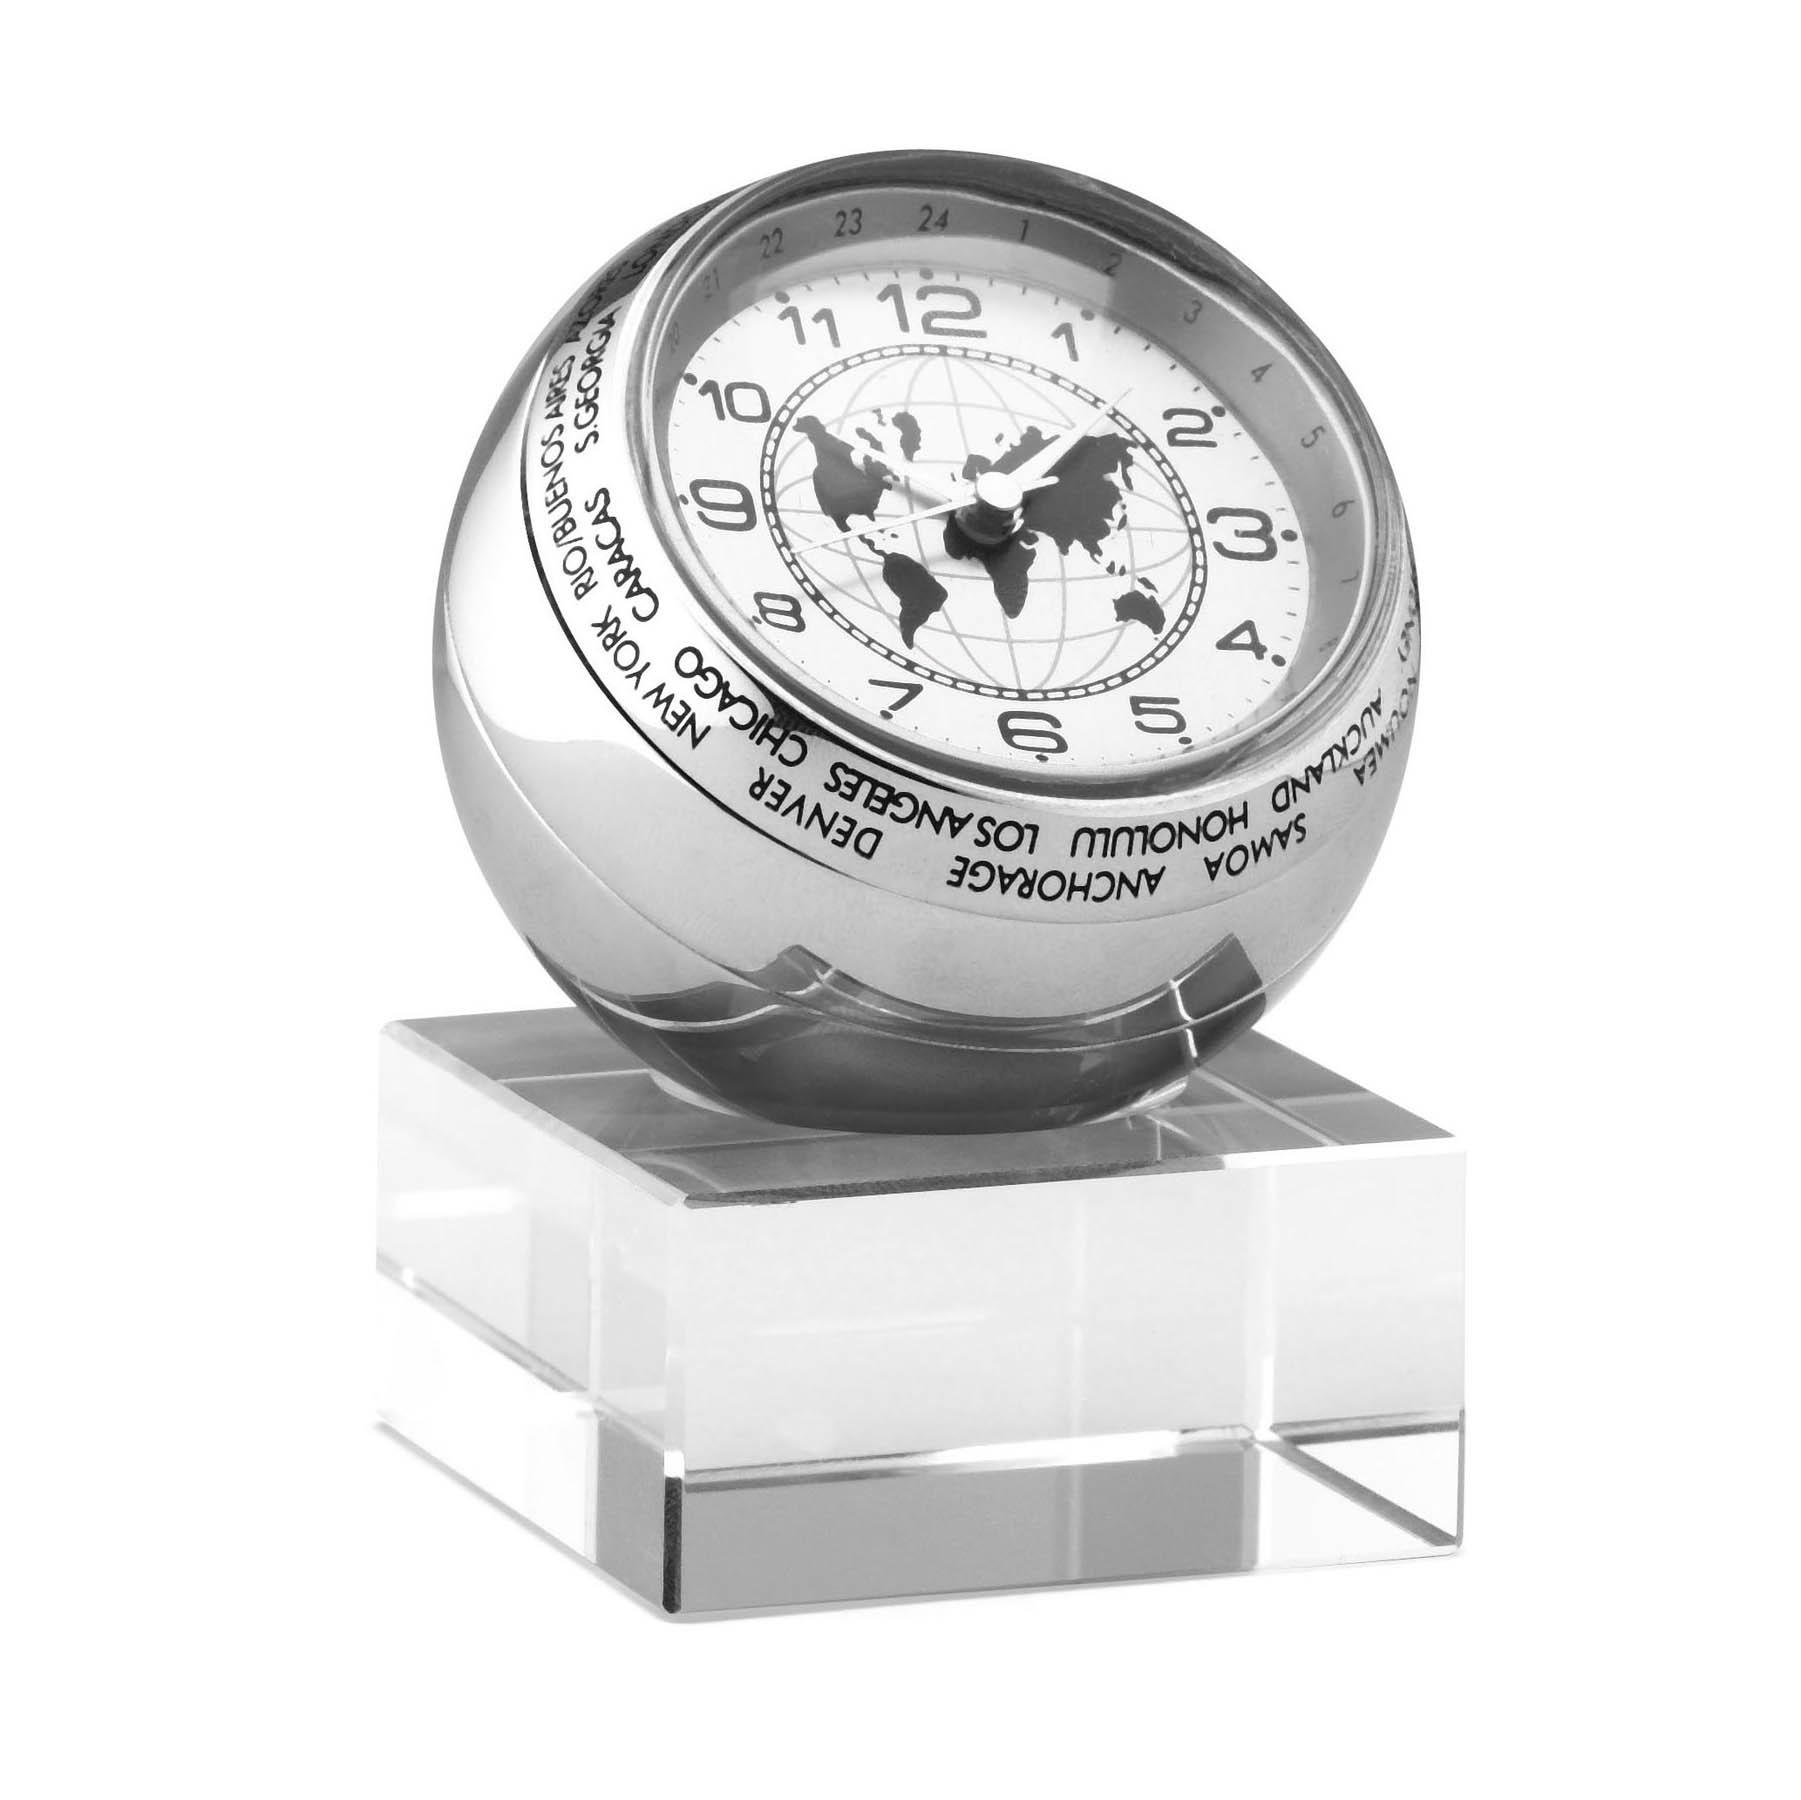 Horizon pendule cadeaux d 39 affaires - Horloge de bureau windows ...